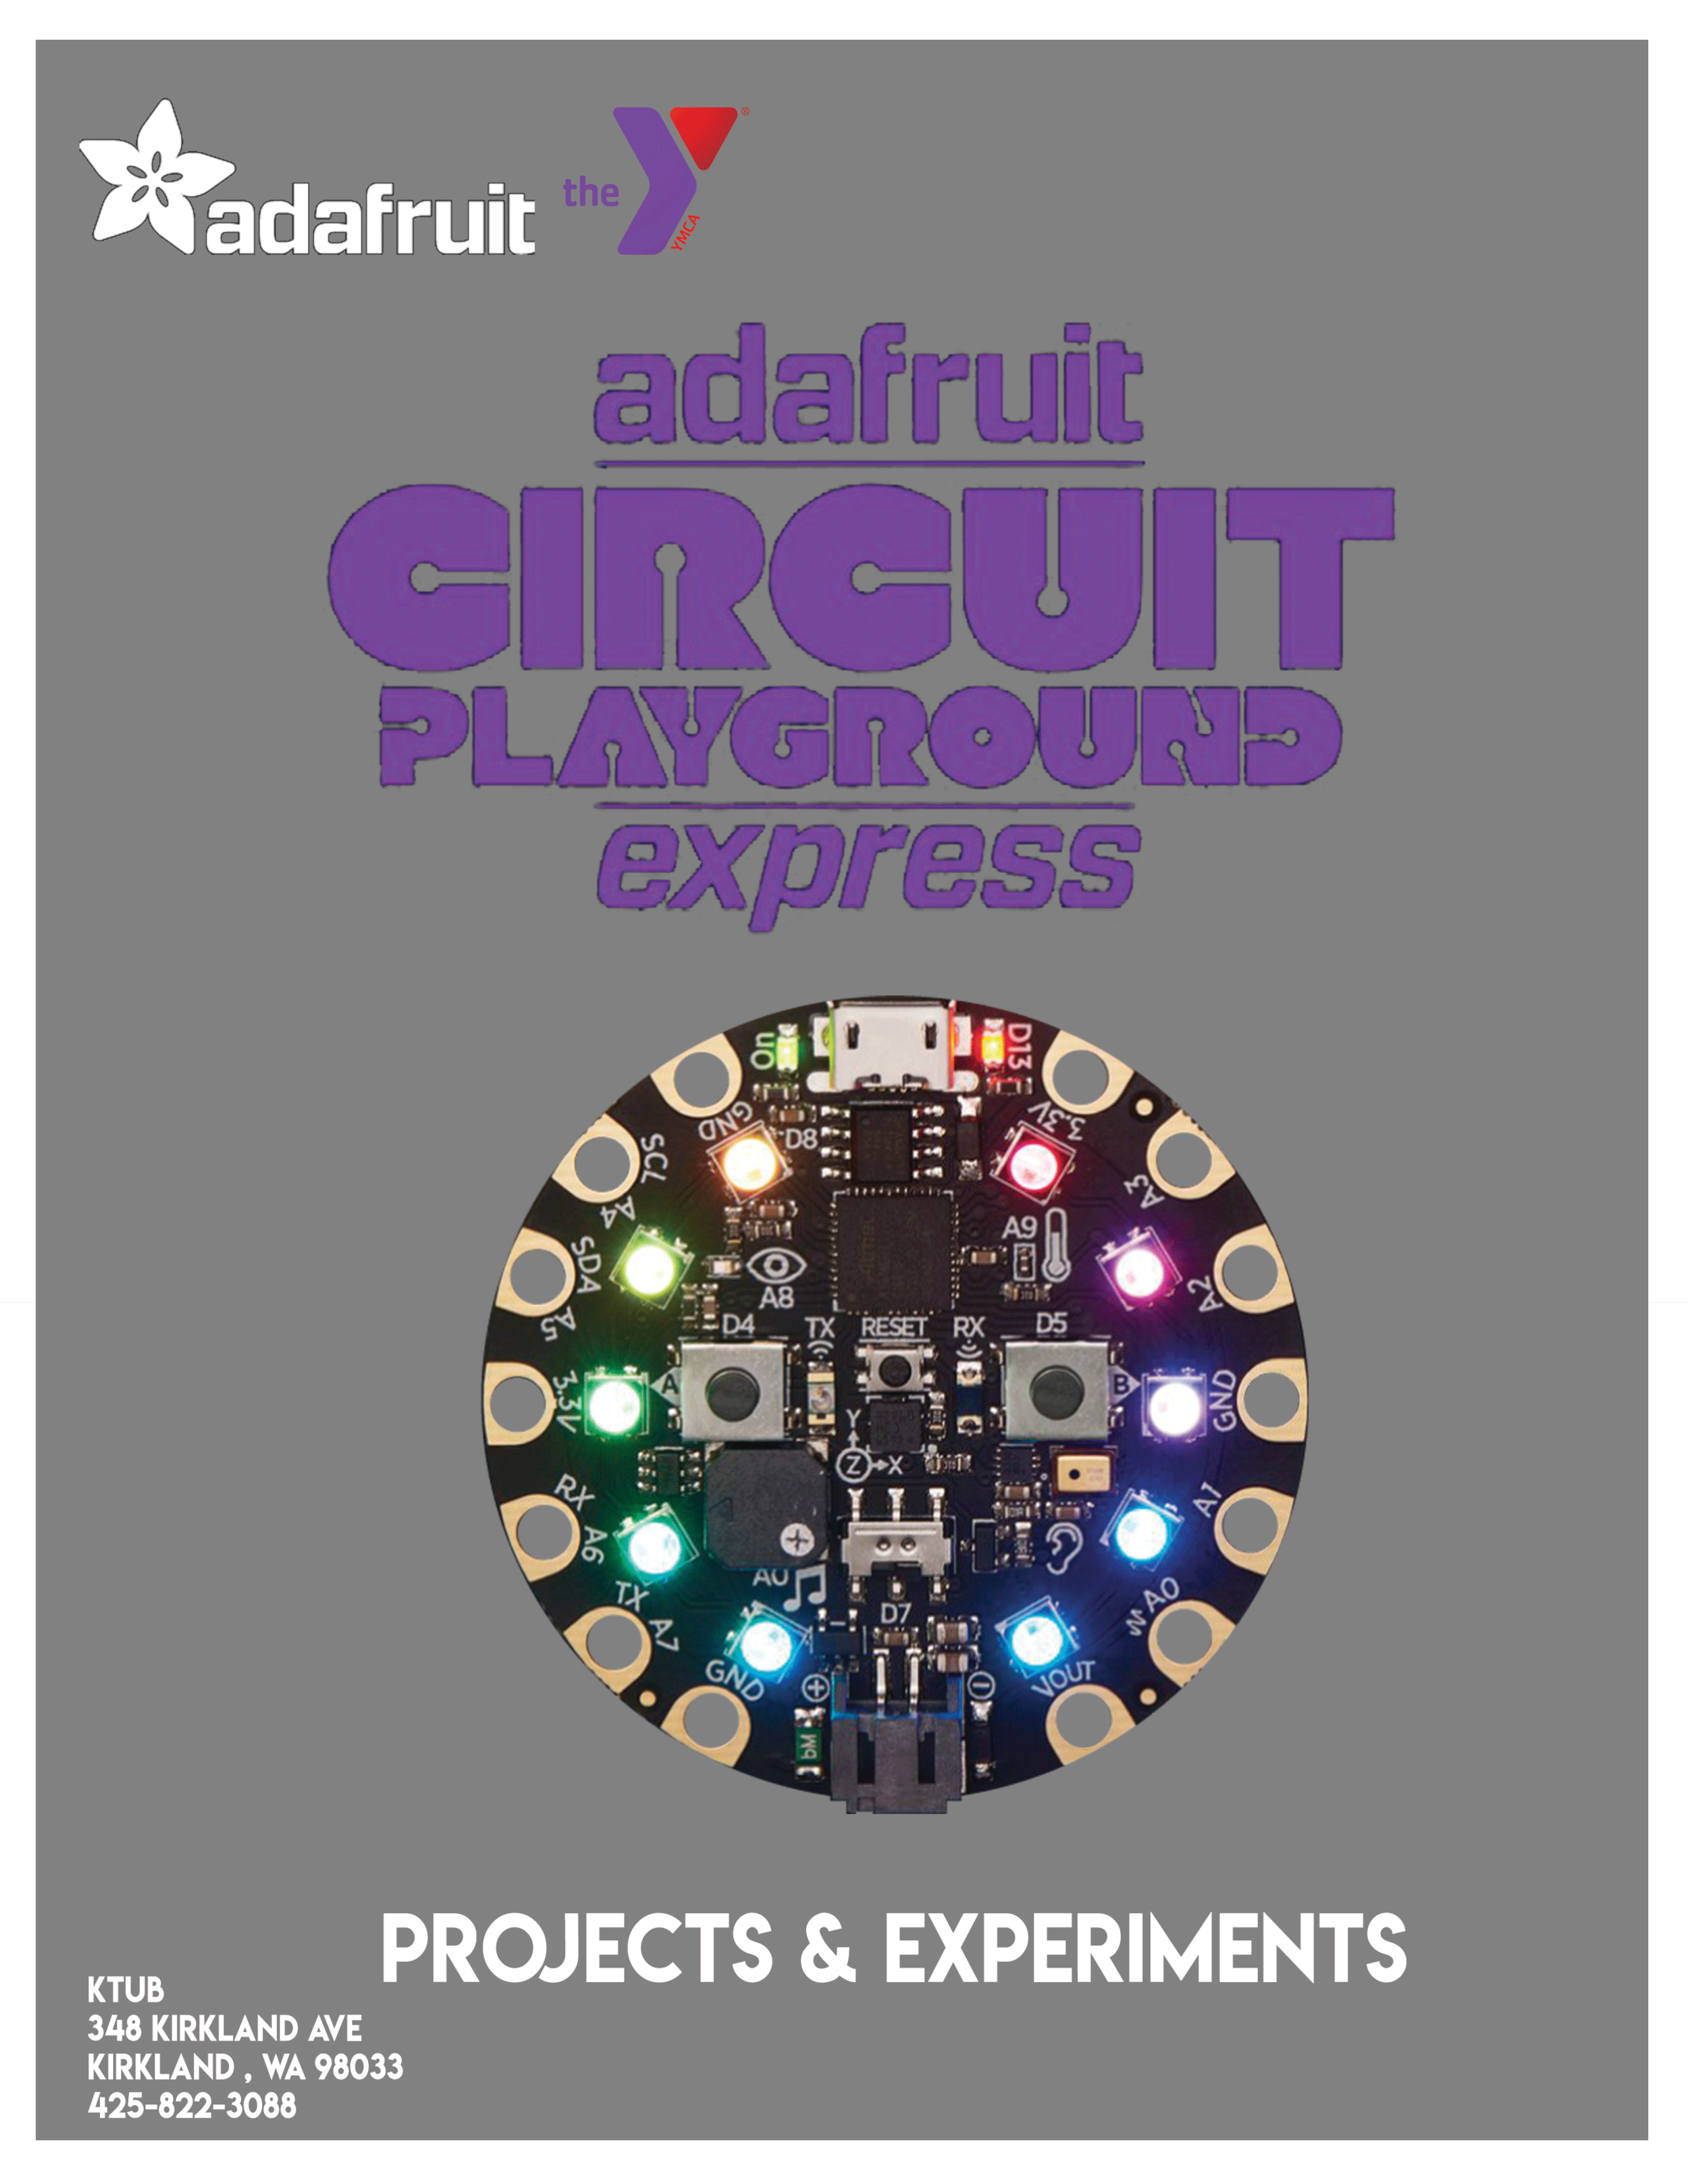 Programming With Circuit Playground Express - Drop in whenever you want and learn how to create magic wands, games and even your very own keyboard using our circuit boards! The sky is the limit as to what you can do, and by following along our easy to use guides, you can go from beginner to pro in no time at all!